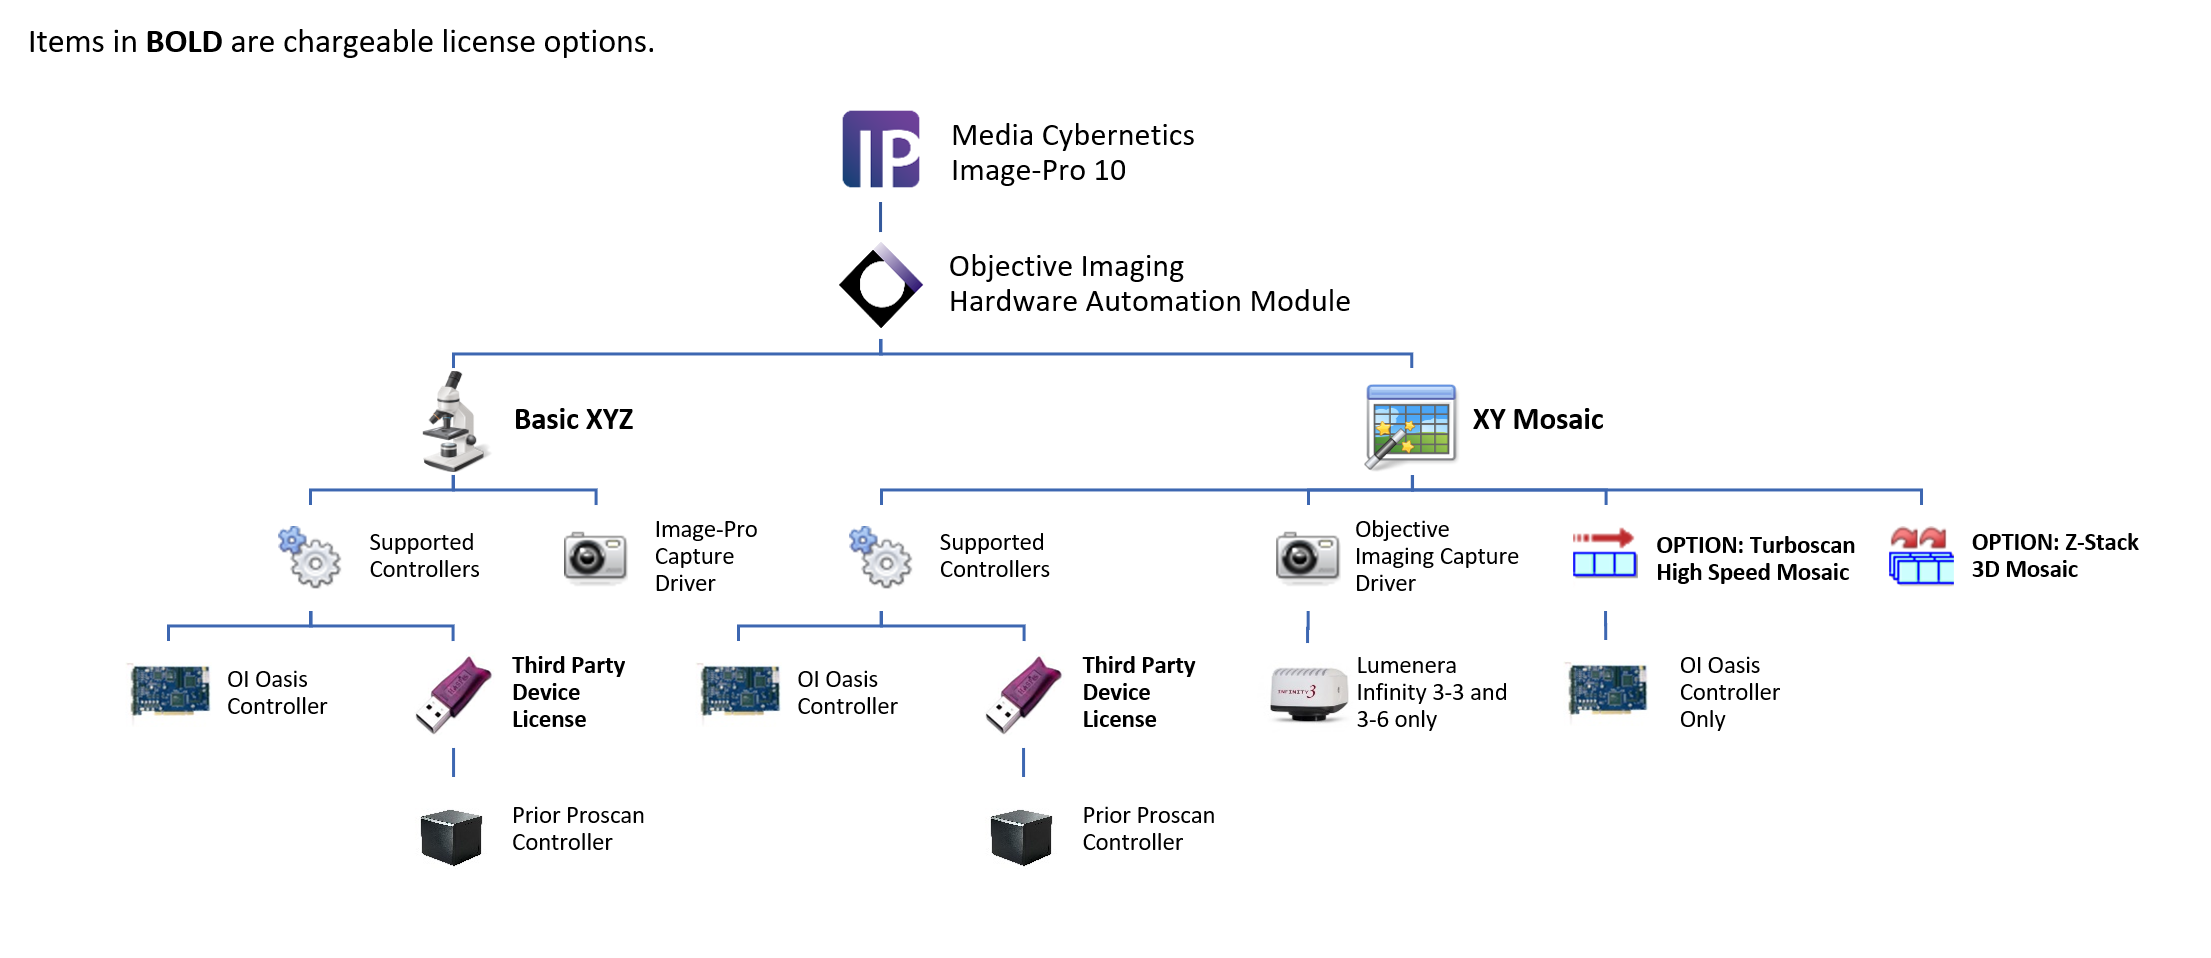 Objective Imaging - Media Cybernetics Hardware Automation Module